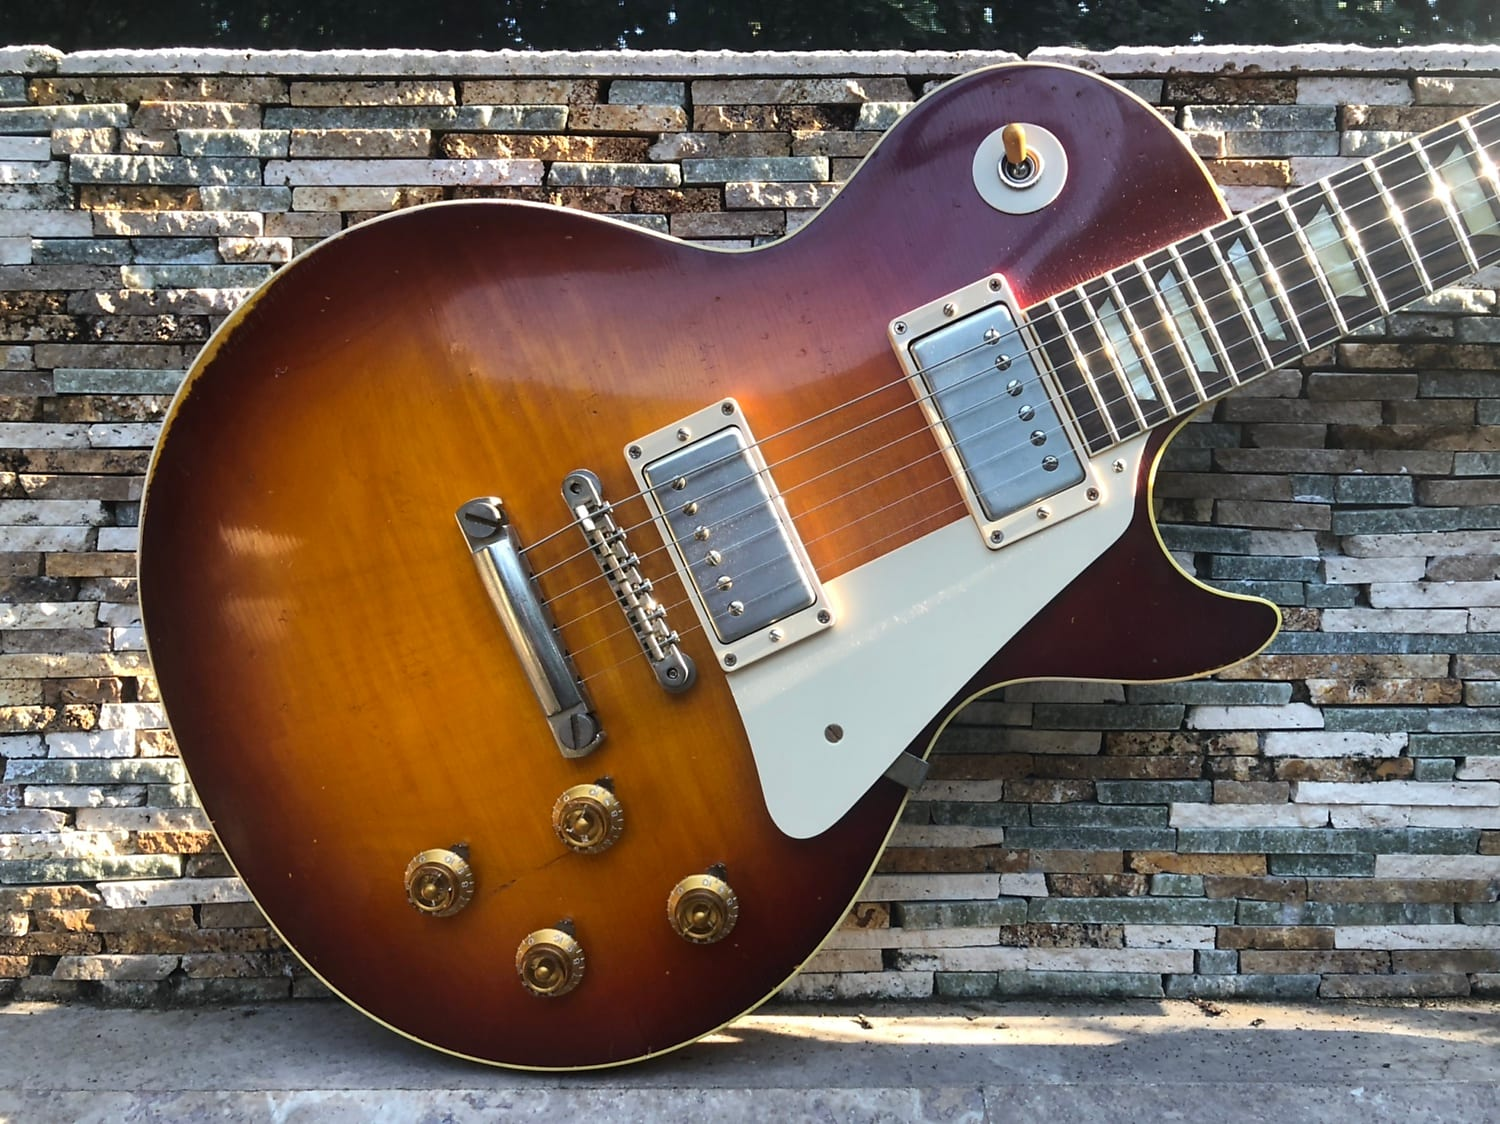 Gibson Collectors Choice #7 John Shanks Les Paul standard CC #7 KILLER aged R0 relic 1960 Reissue